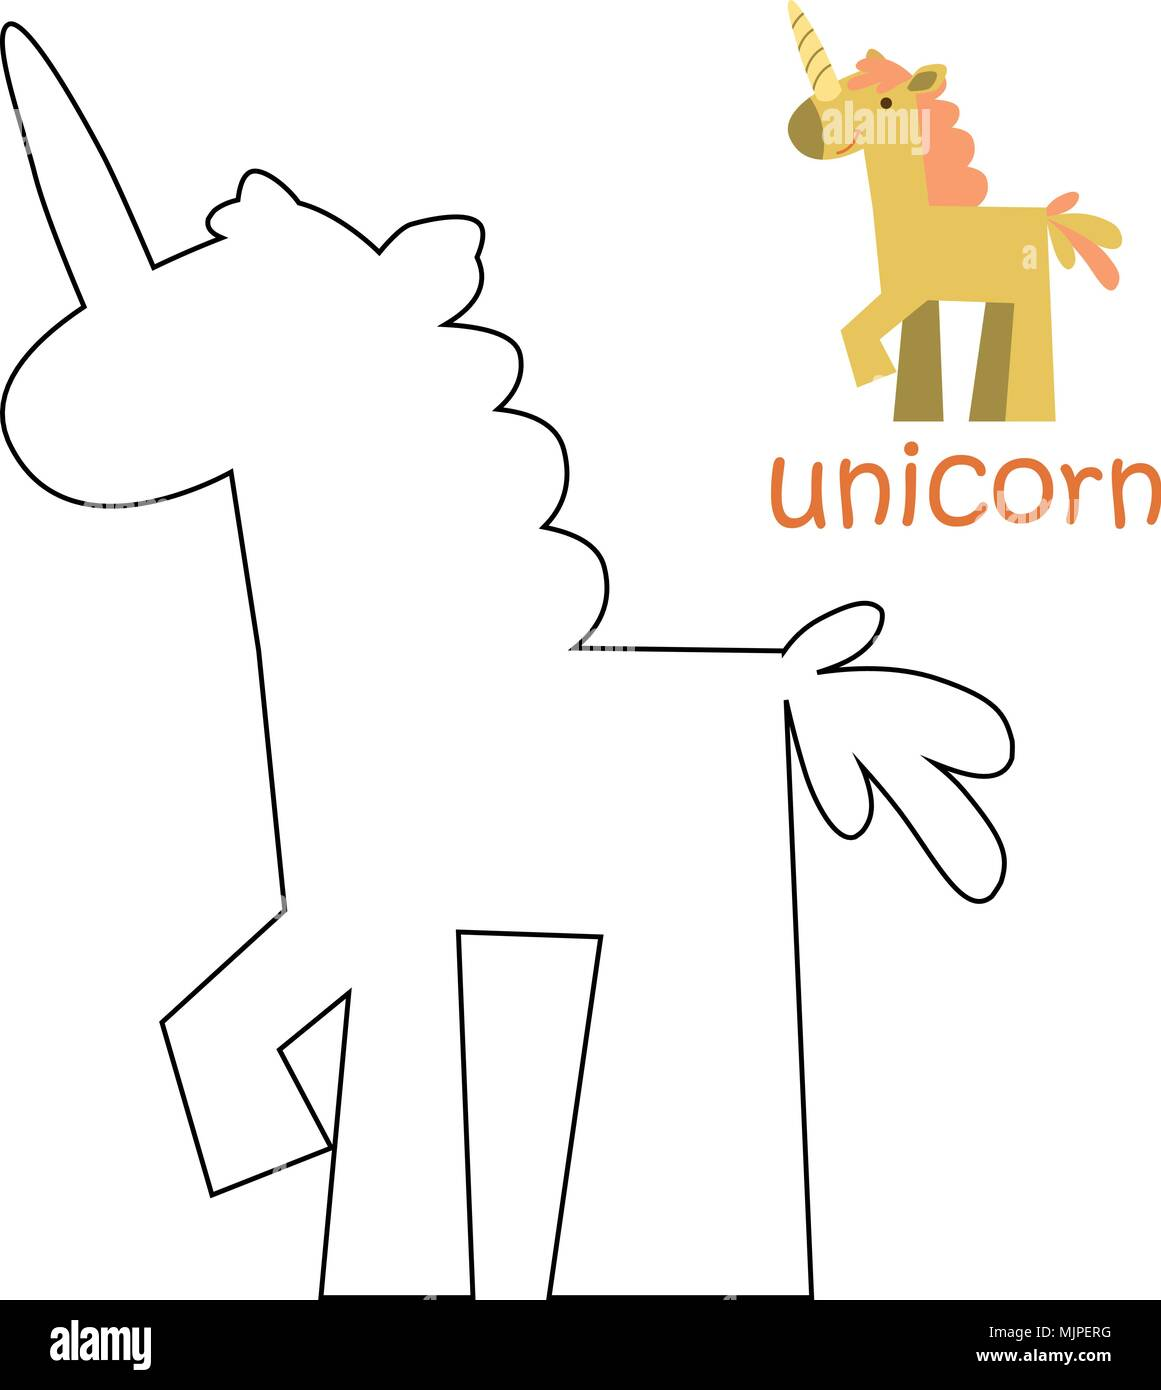 Kids coloring page - unicorn Stock Vector Art & Illustration, Vector ...